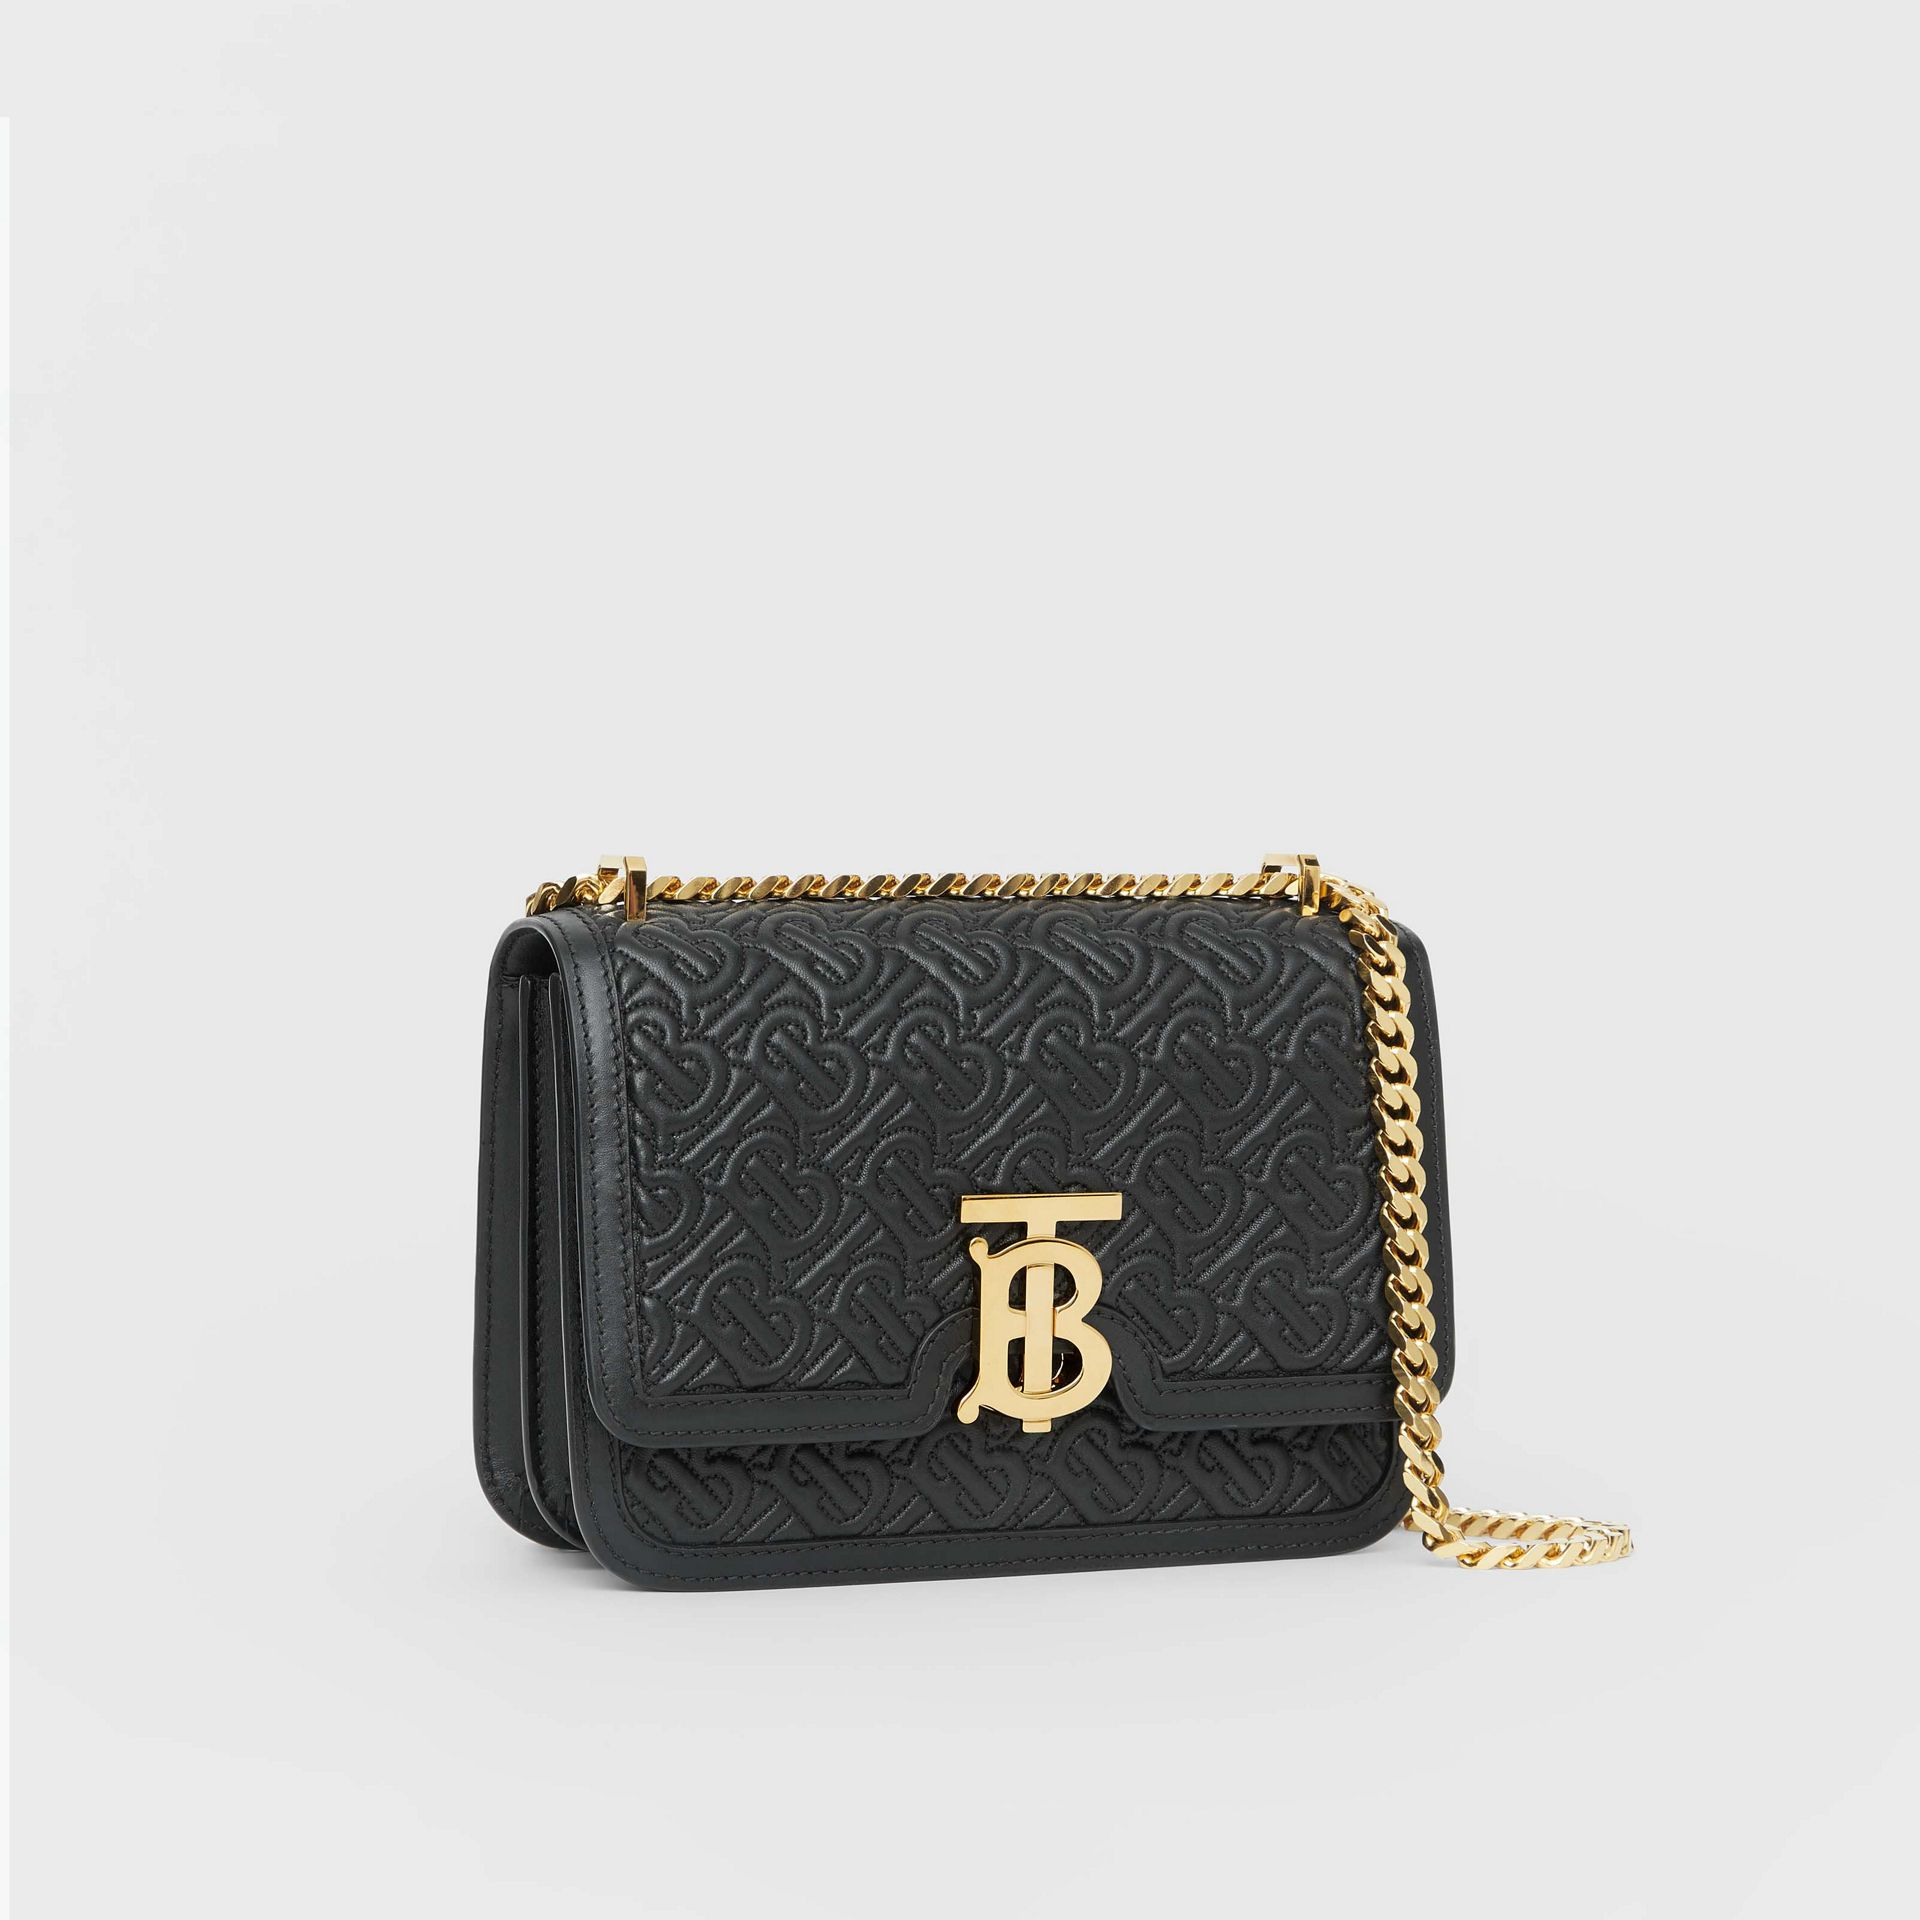 Small Quilted Monogram Lambskin TB Bag in Black - Women | Burberry - gallery image 5